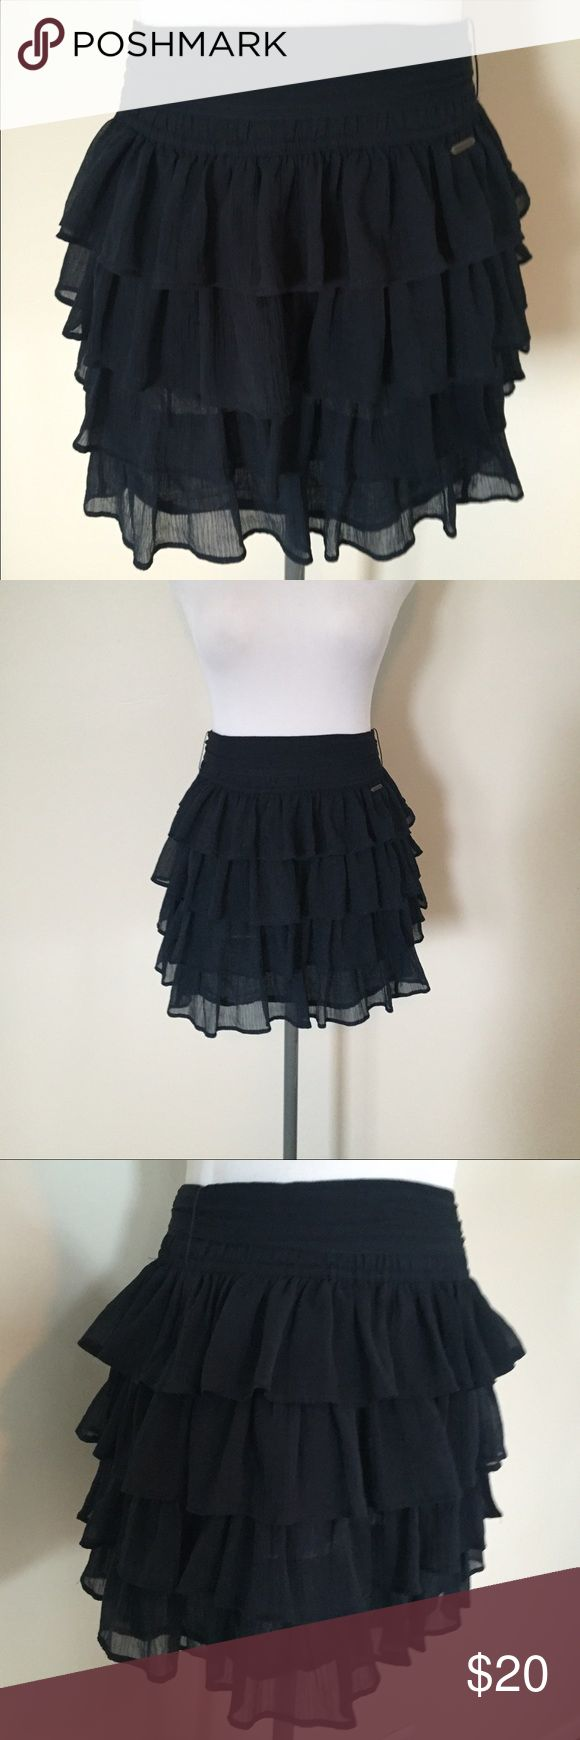 Navy blue ruffle skirt Such a lightweight fun ruffled navy blue skirt and a gorgeous wrap it around my waist height in the back or the front Abercrombie & Fitch Skirts Mini